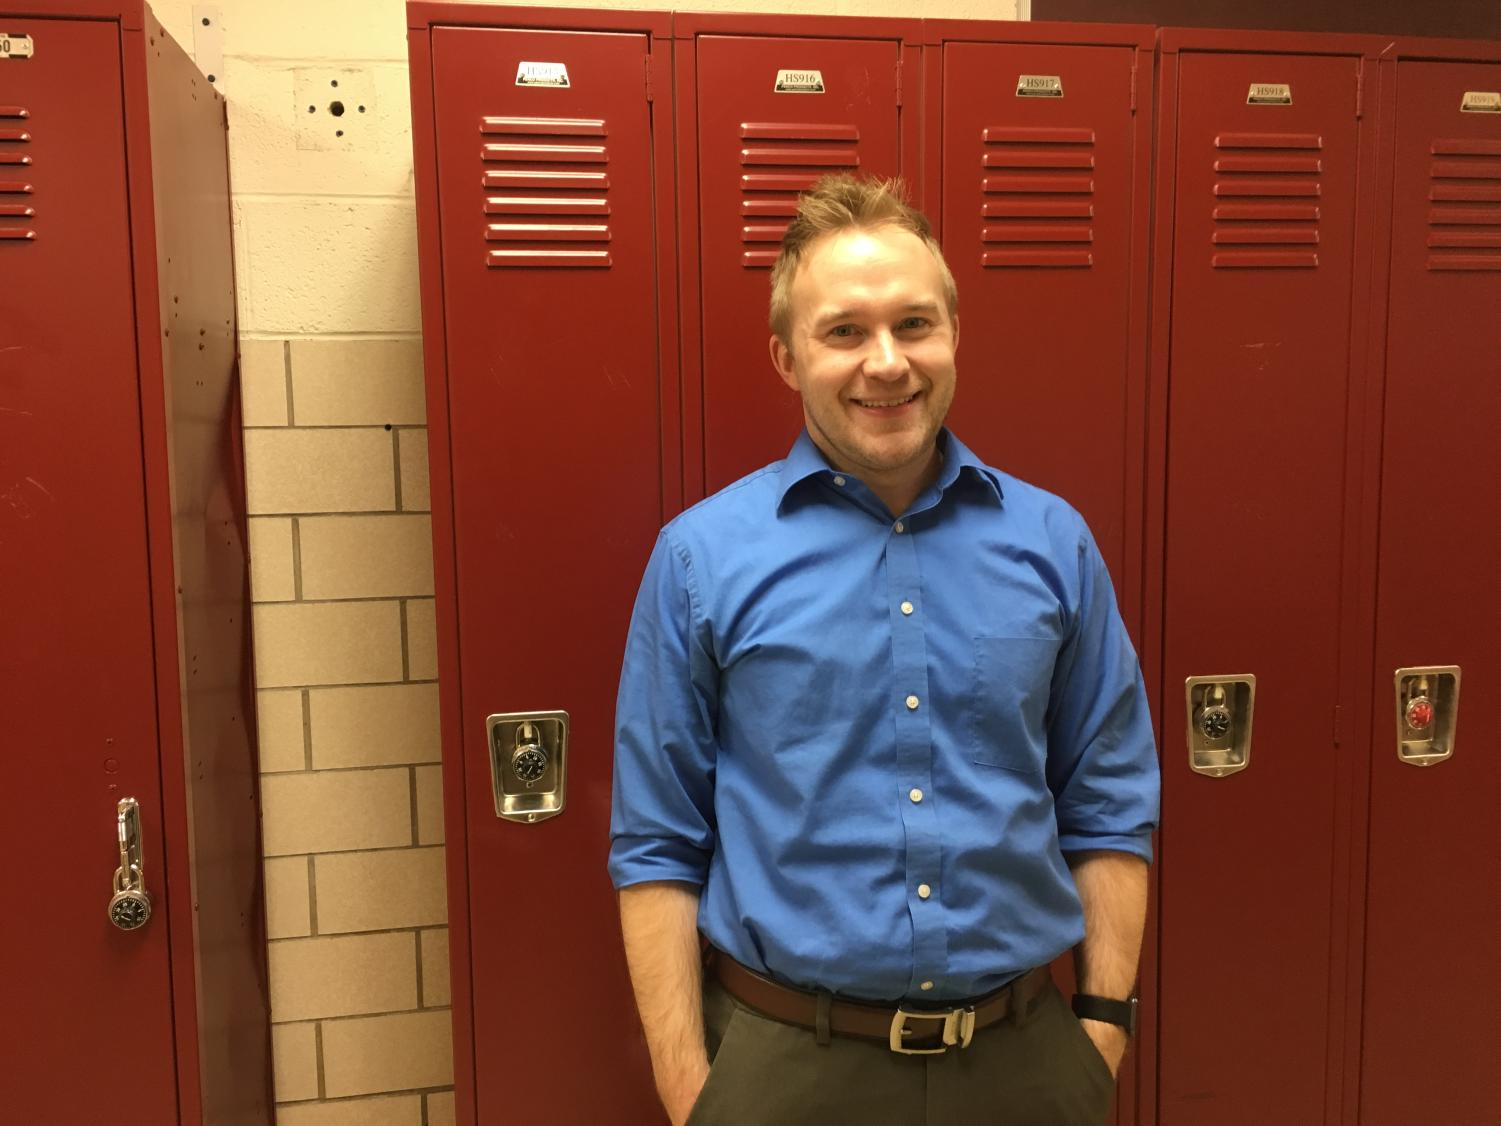 History teacher Tom Lyon poses in the halls of Glen Rock High School on Feb. 6.